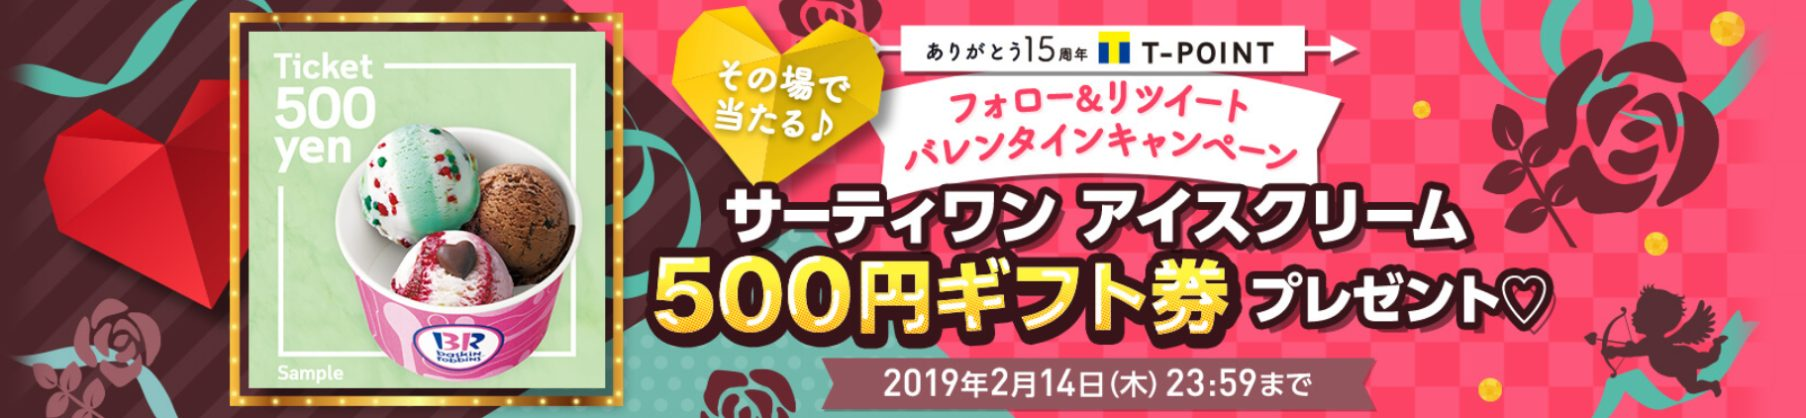 twitter-campaign-valentines-day-tpoint